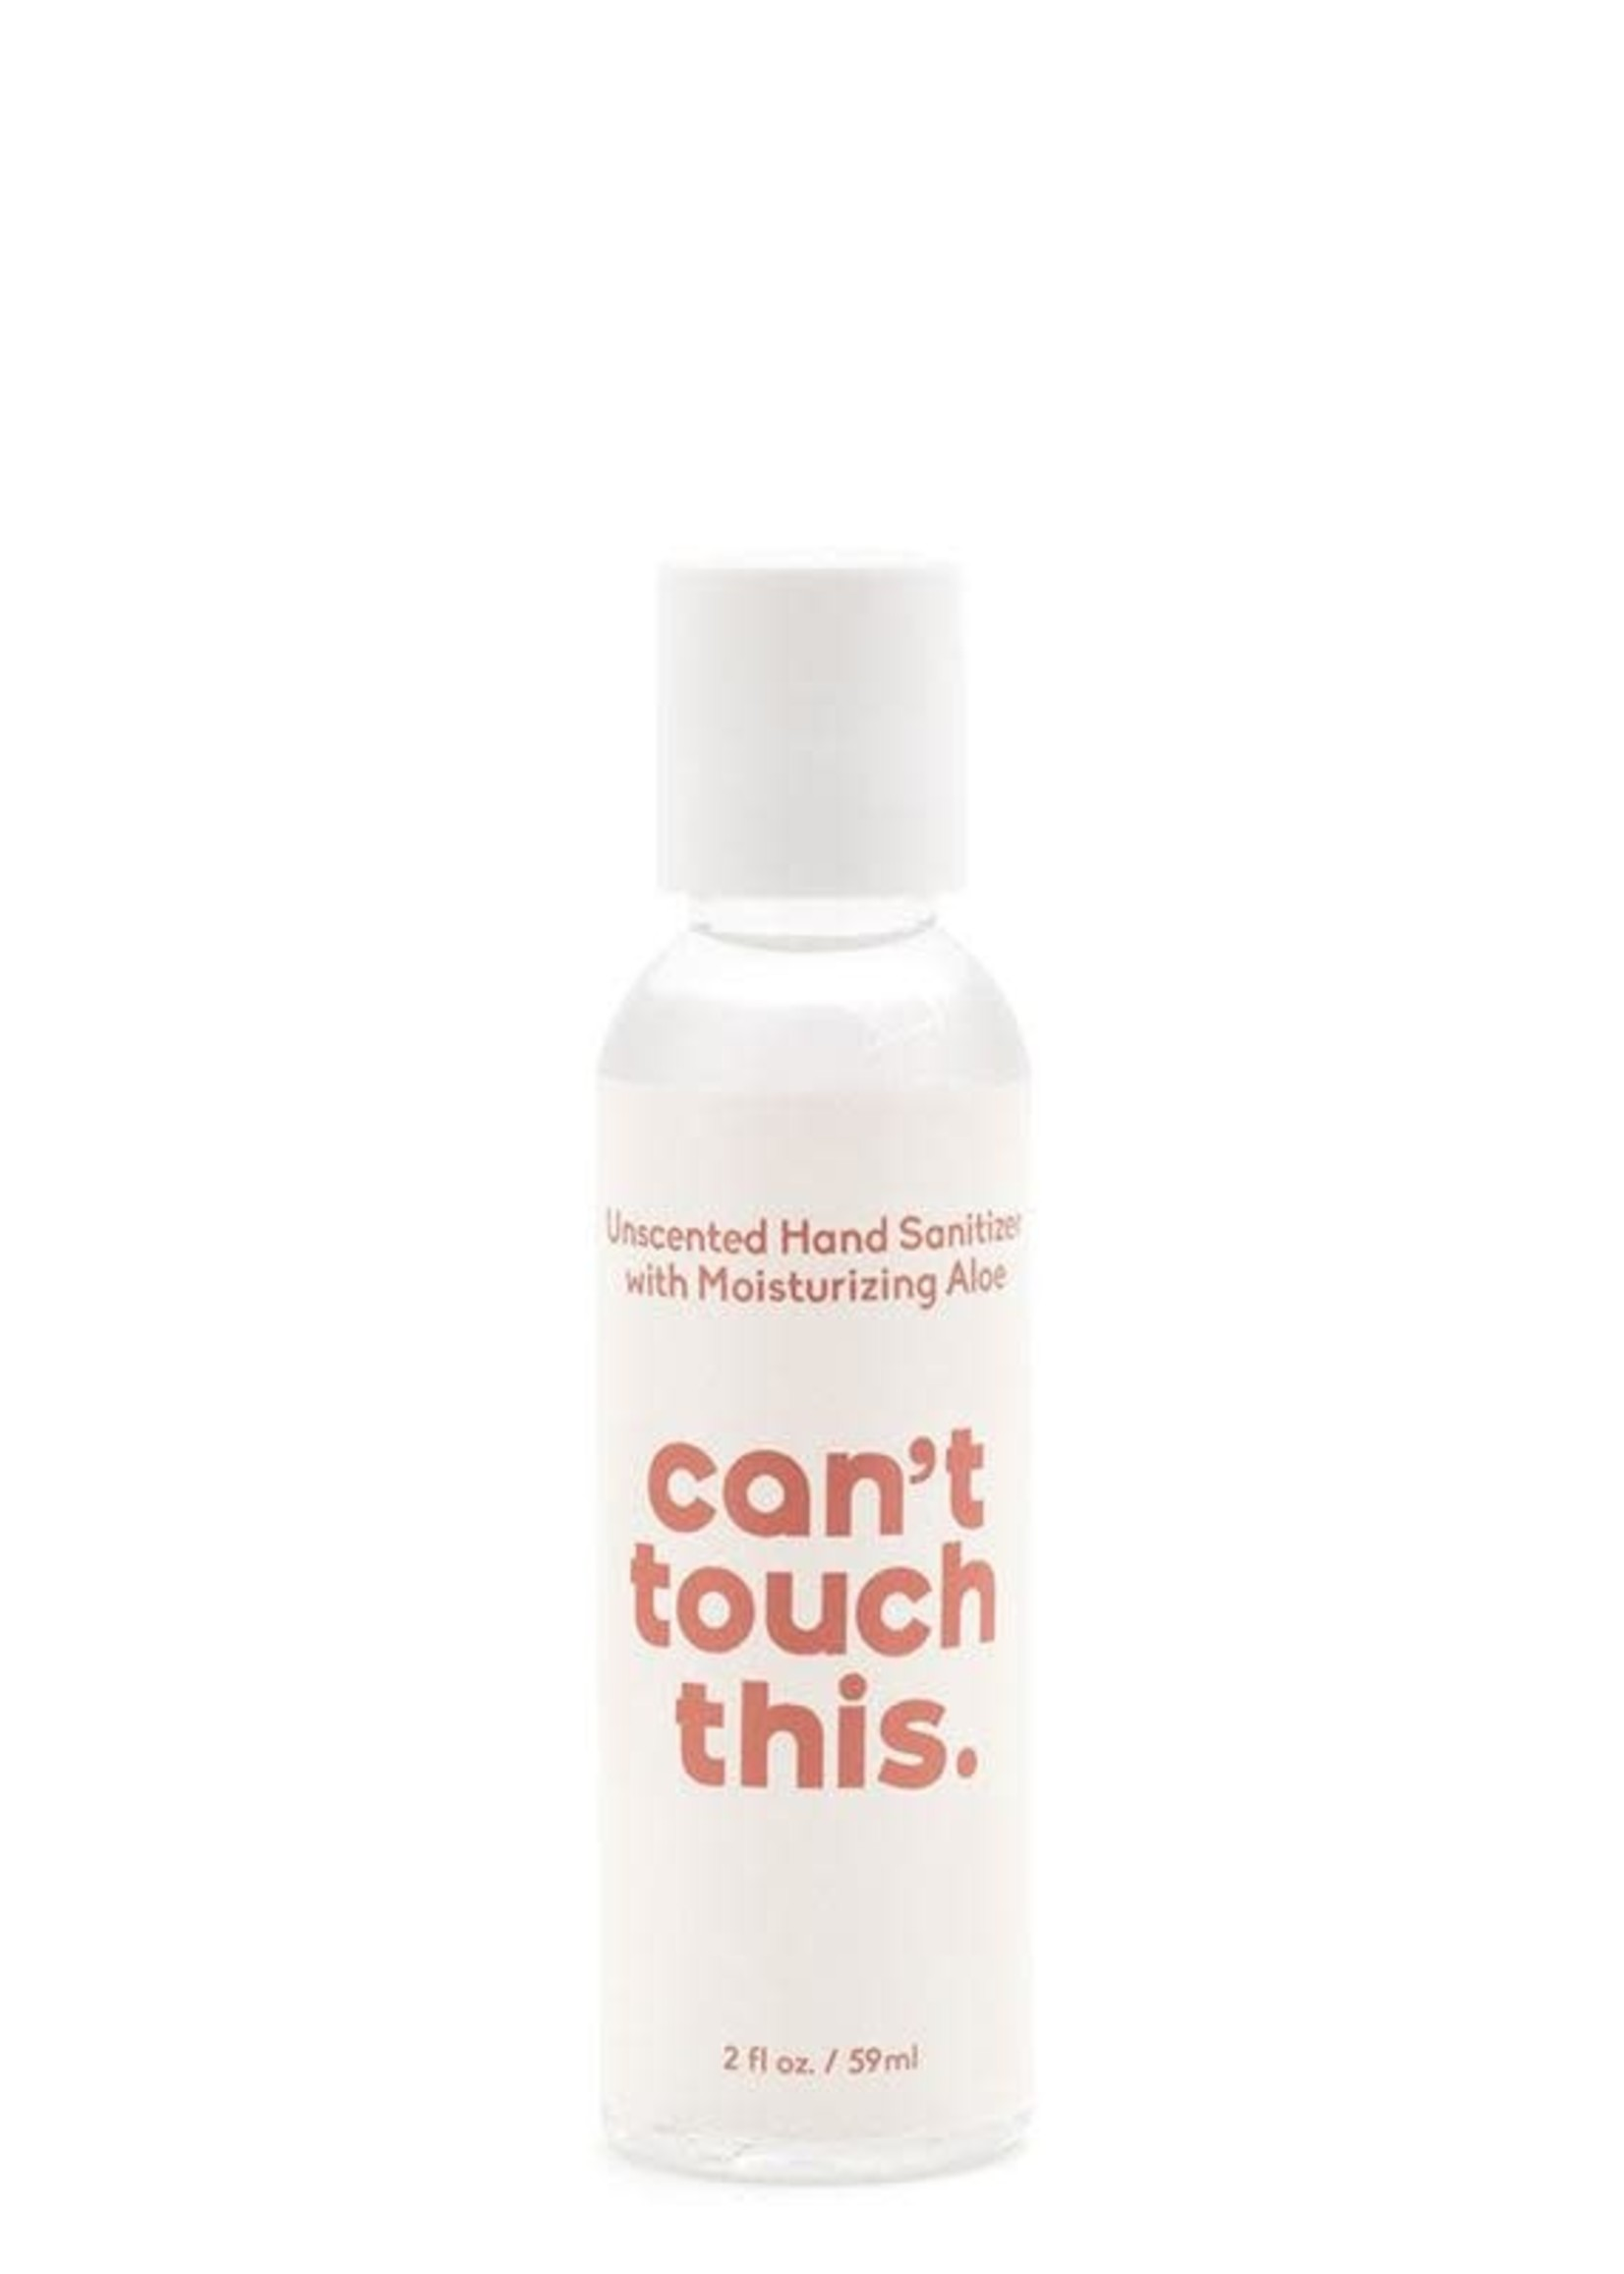 PADDYWAX PADDYWAX HAND SANITIZER - YOU CAN'T TOUCH THIS